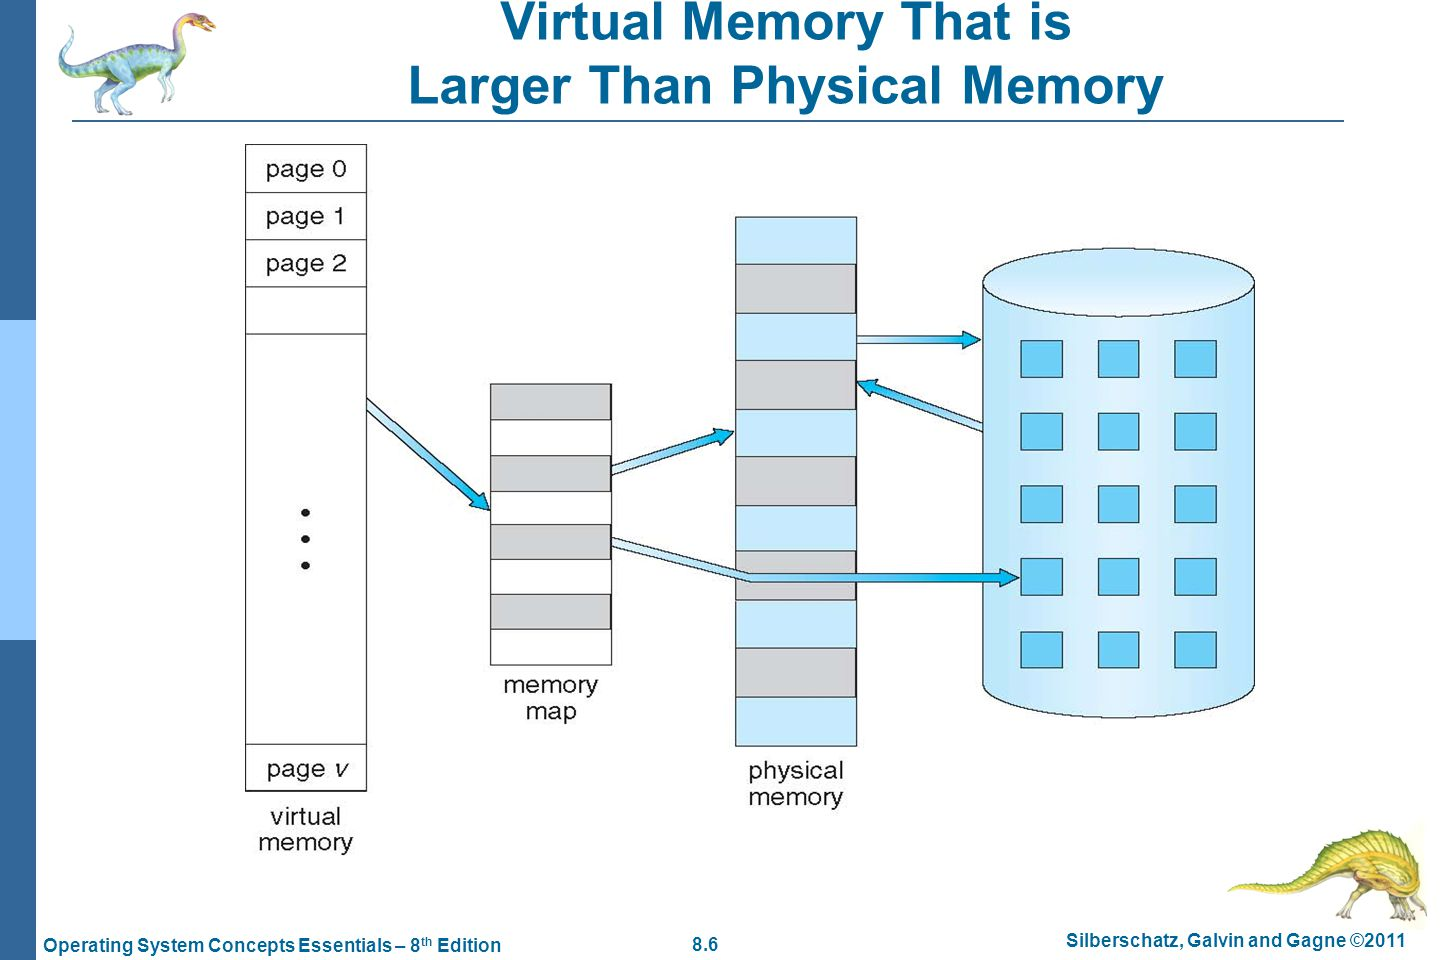 8.6 Silberschatz, Galvin and Gagne ©2011 Operating System Concepts Essentials – 8 th Edition Virtual Memory That is Larger Than Physical Memory